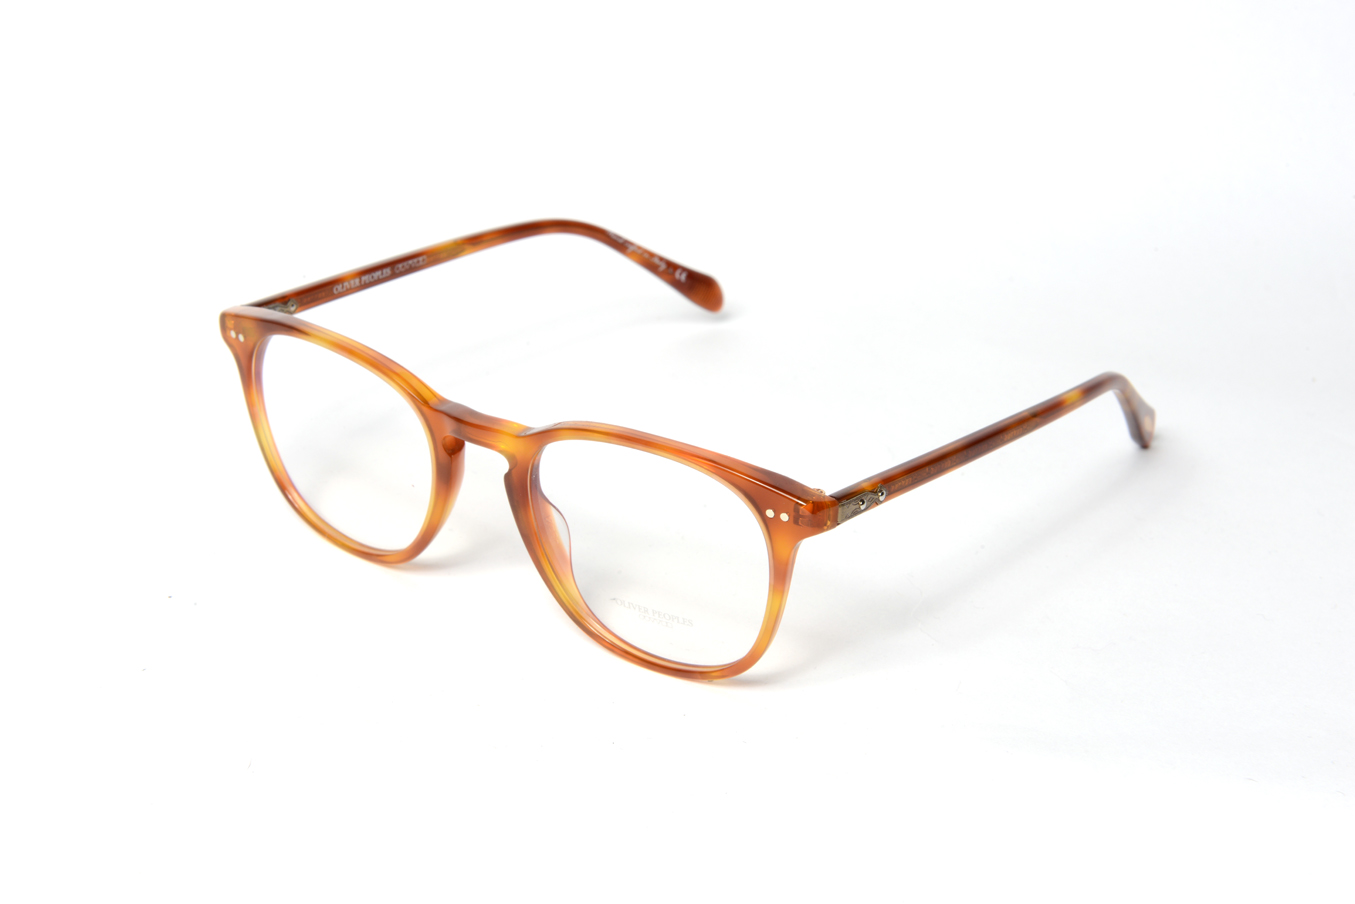 bcdc1210bb1f6 Oliver Peoples Sir Finley - Piccadilly Opticians -